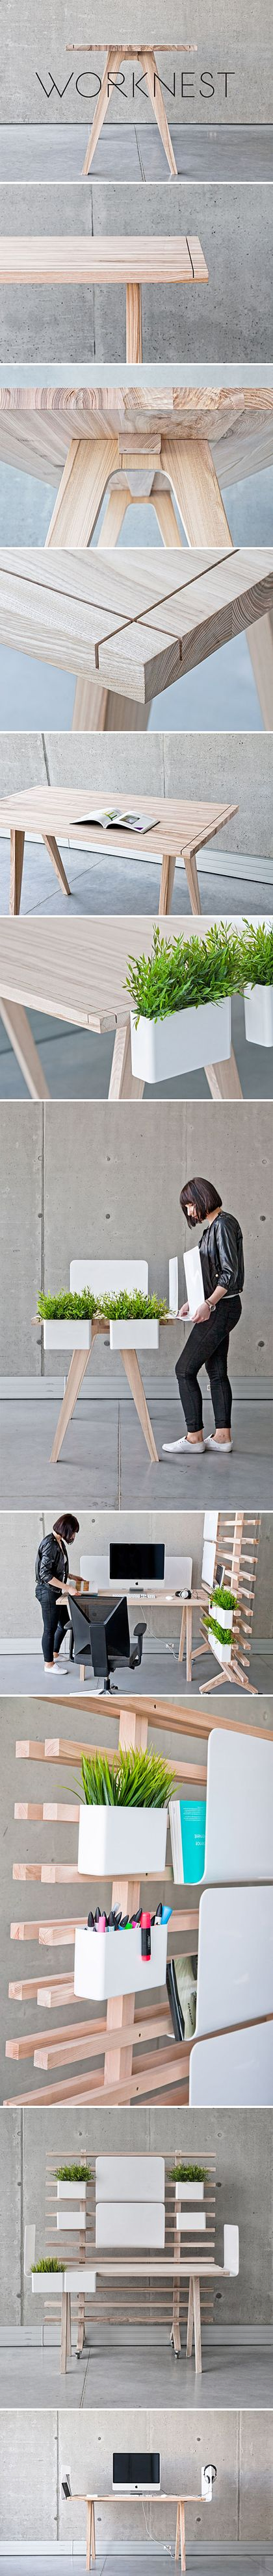 Worknest : Handcrafted Modular Workplace